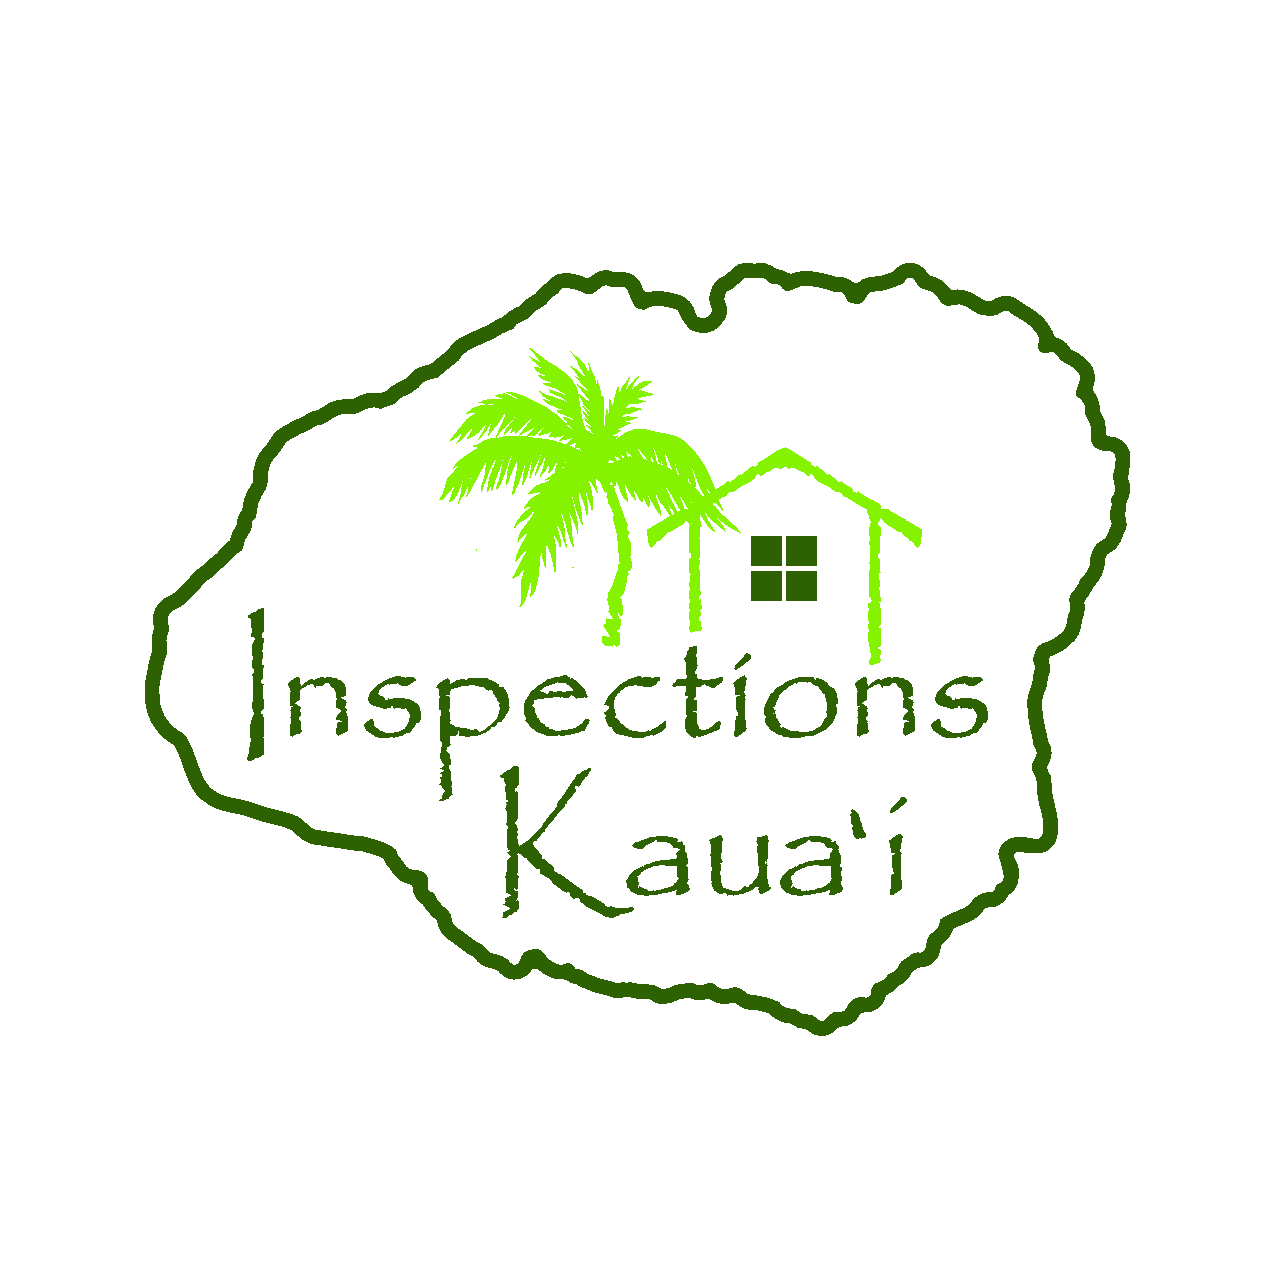 Kauaiinspection logo small jpg